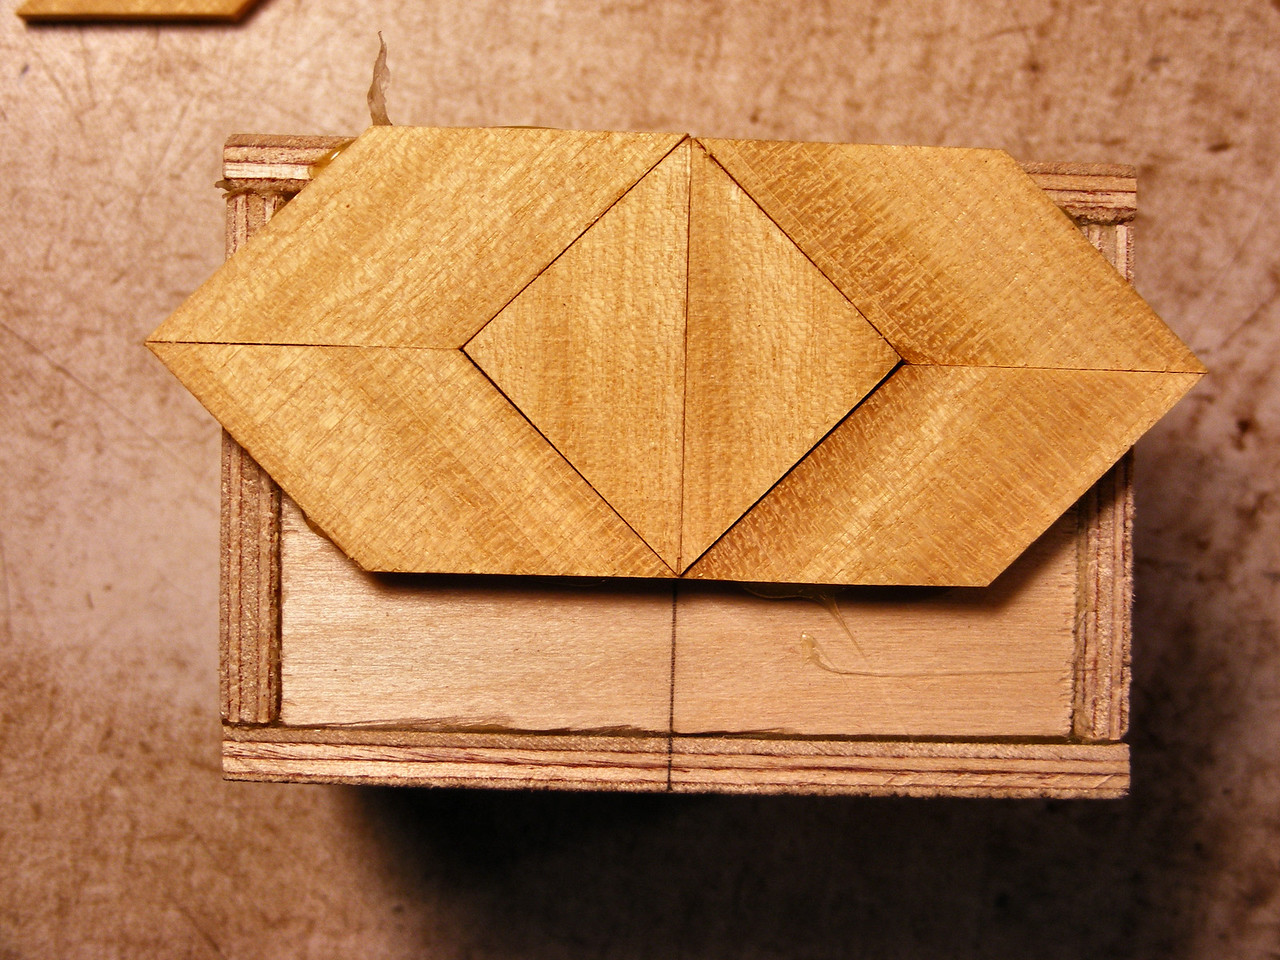 #9 Making a Tiny Sq Box<br /> Next I glue the diamonds on making sure the grain of the wood is going the way I want it to. I will use the grain of the wood to always make a uniform pattern on the box. To me the grain always has a right and wrong way to lay on each piece.